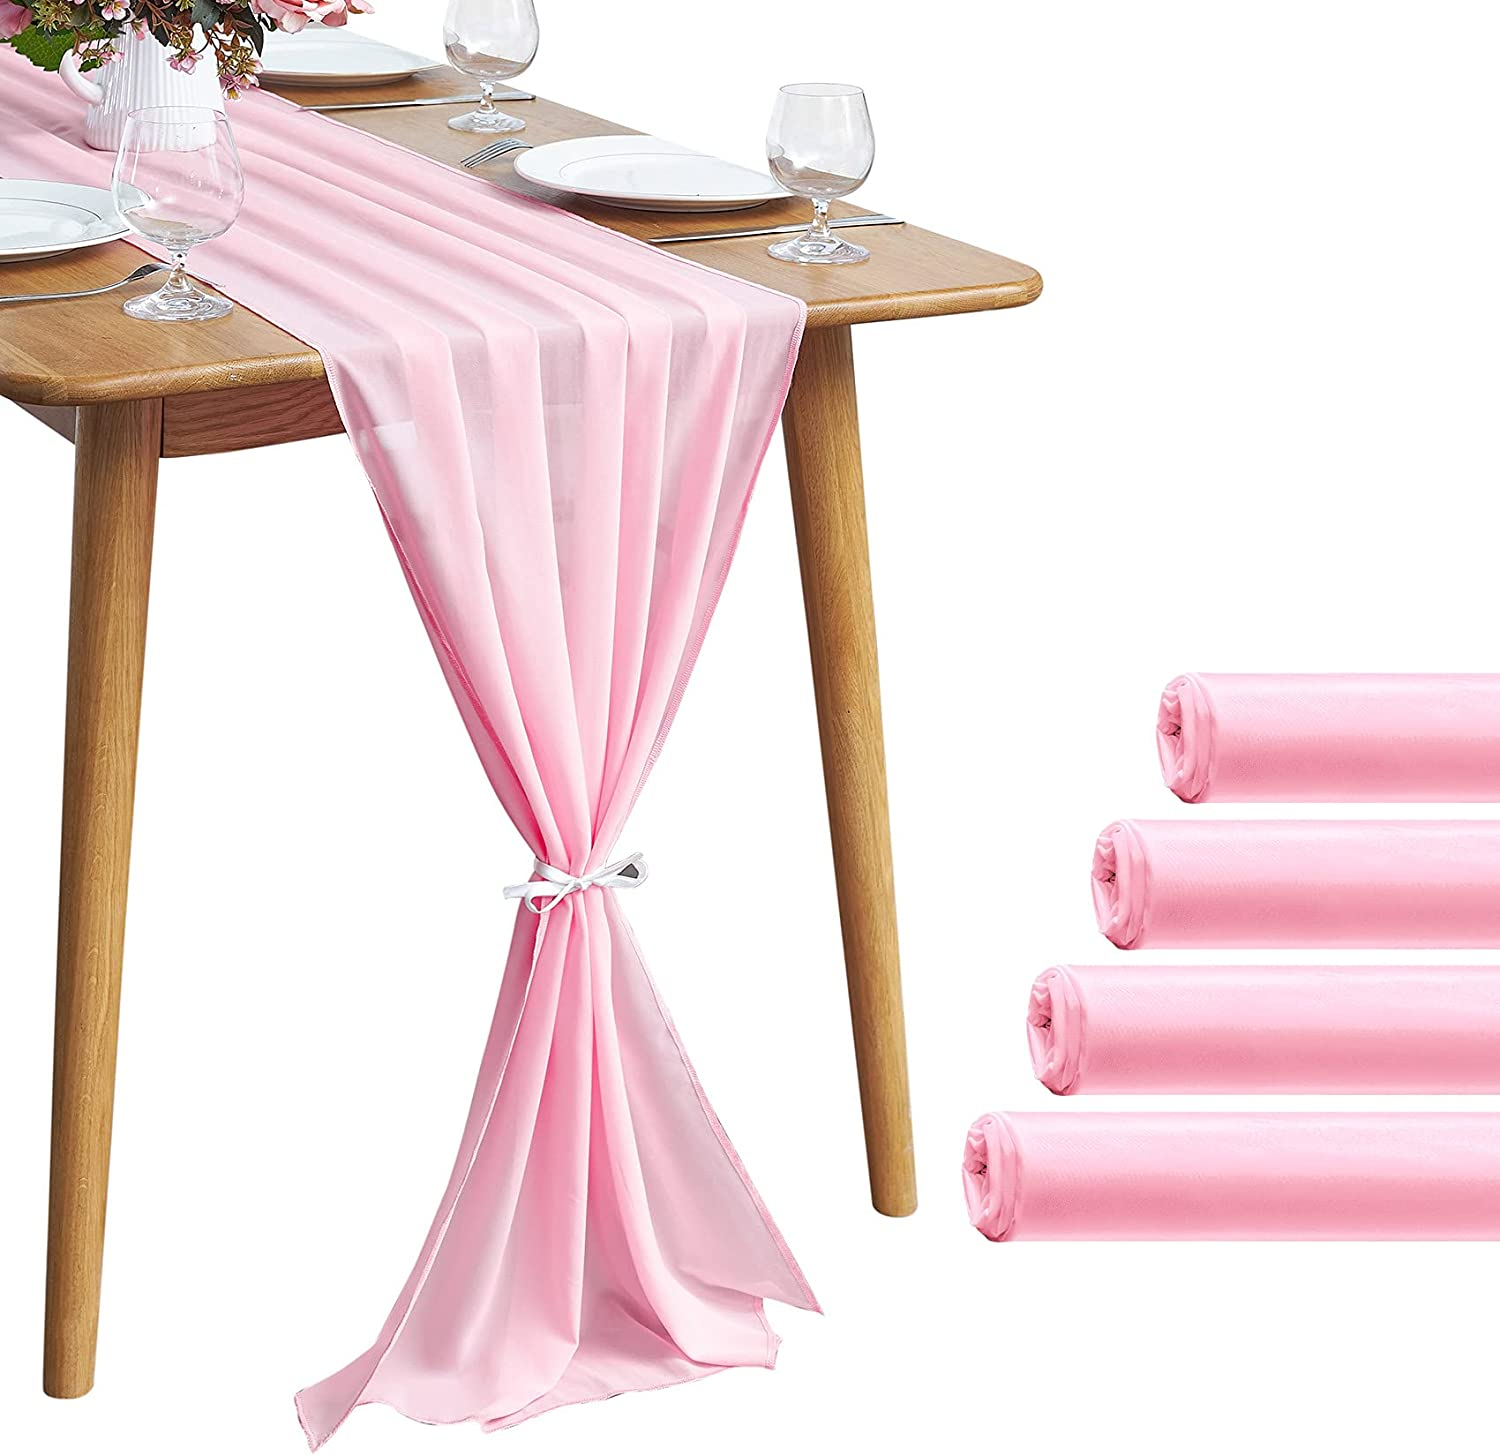 5 Pieces 10Ft Limited price sale Pink Year-end gift Chiffon Table Ro Runner for 29x120 Inch Sheer